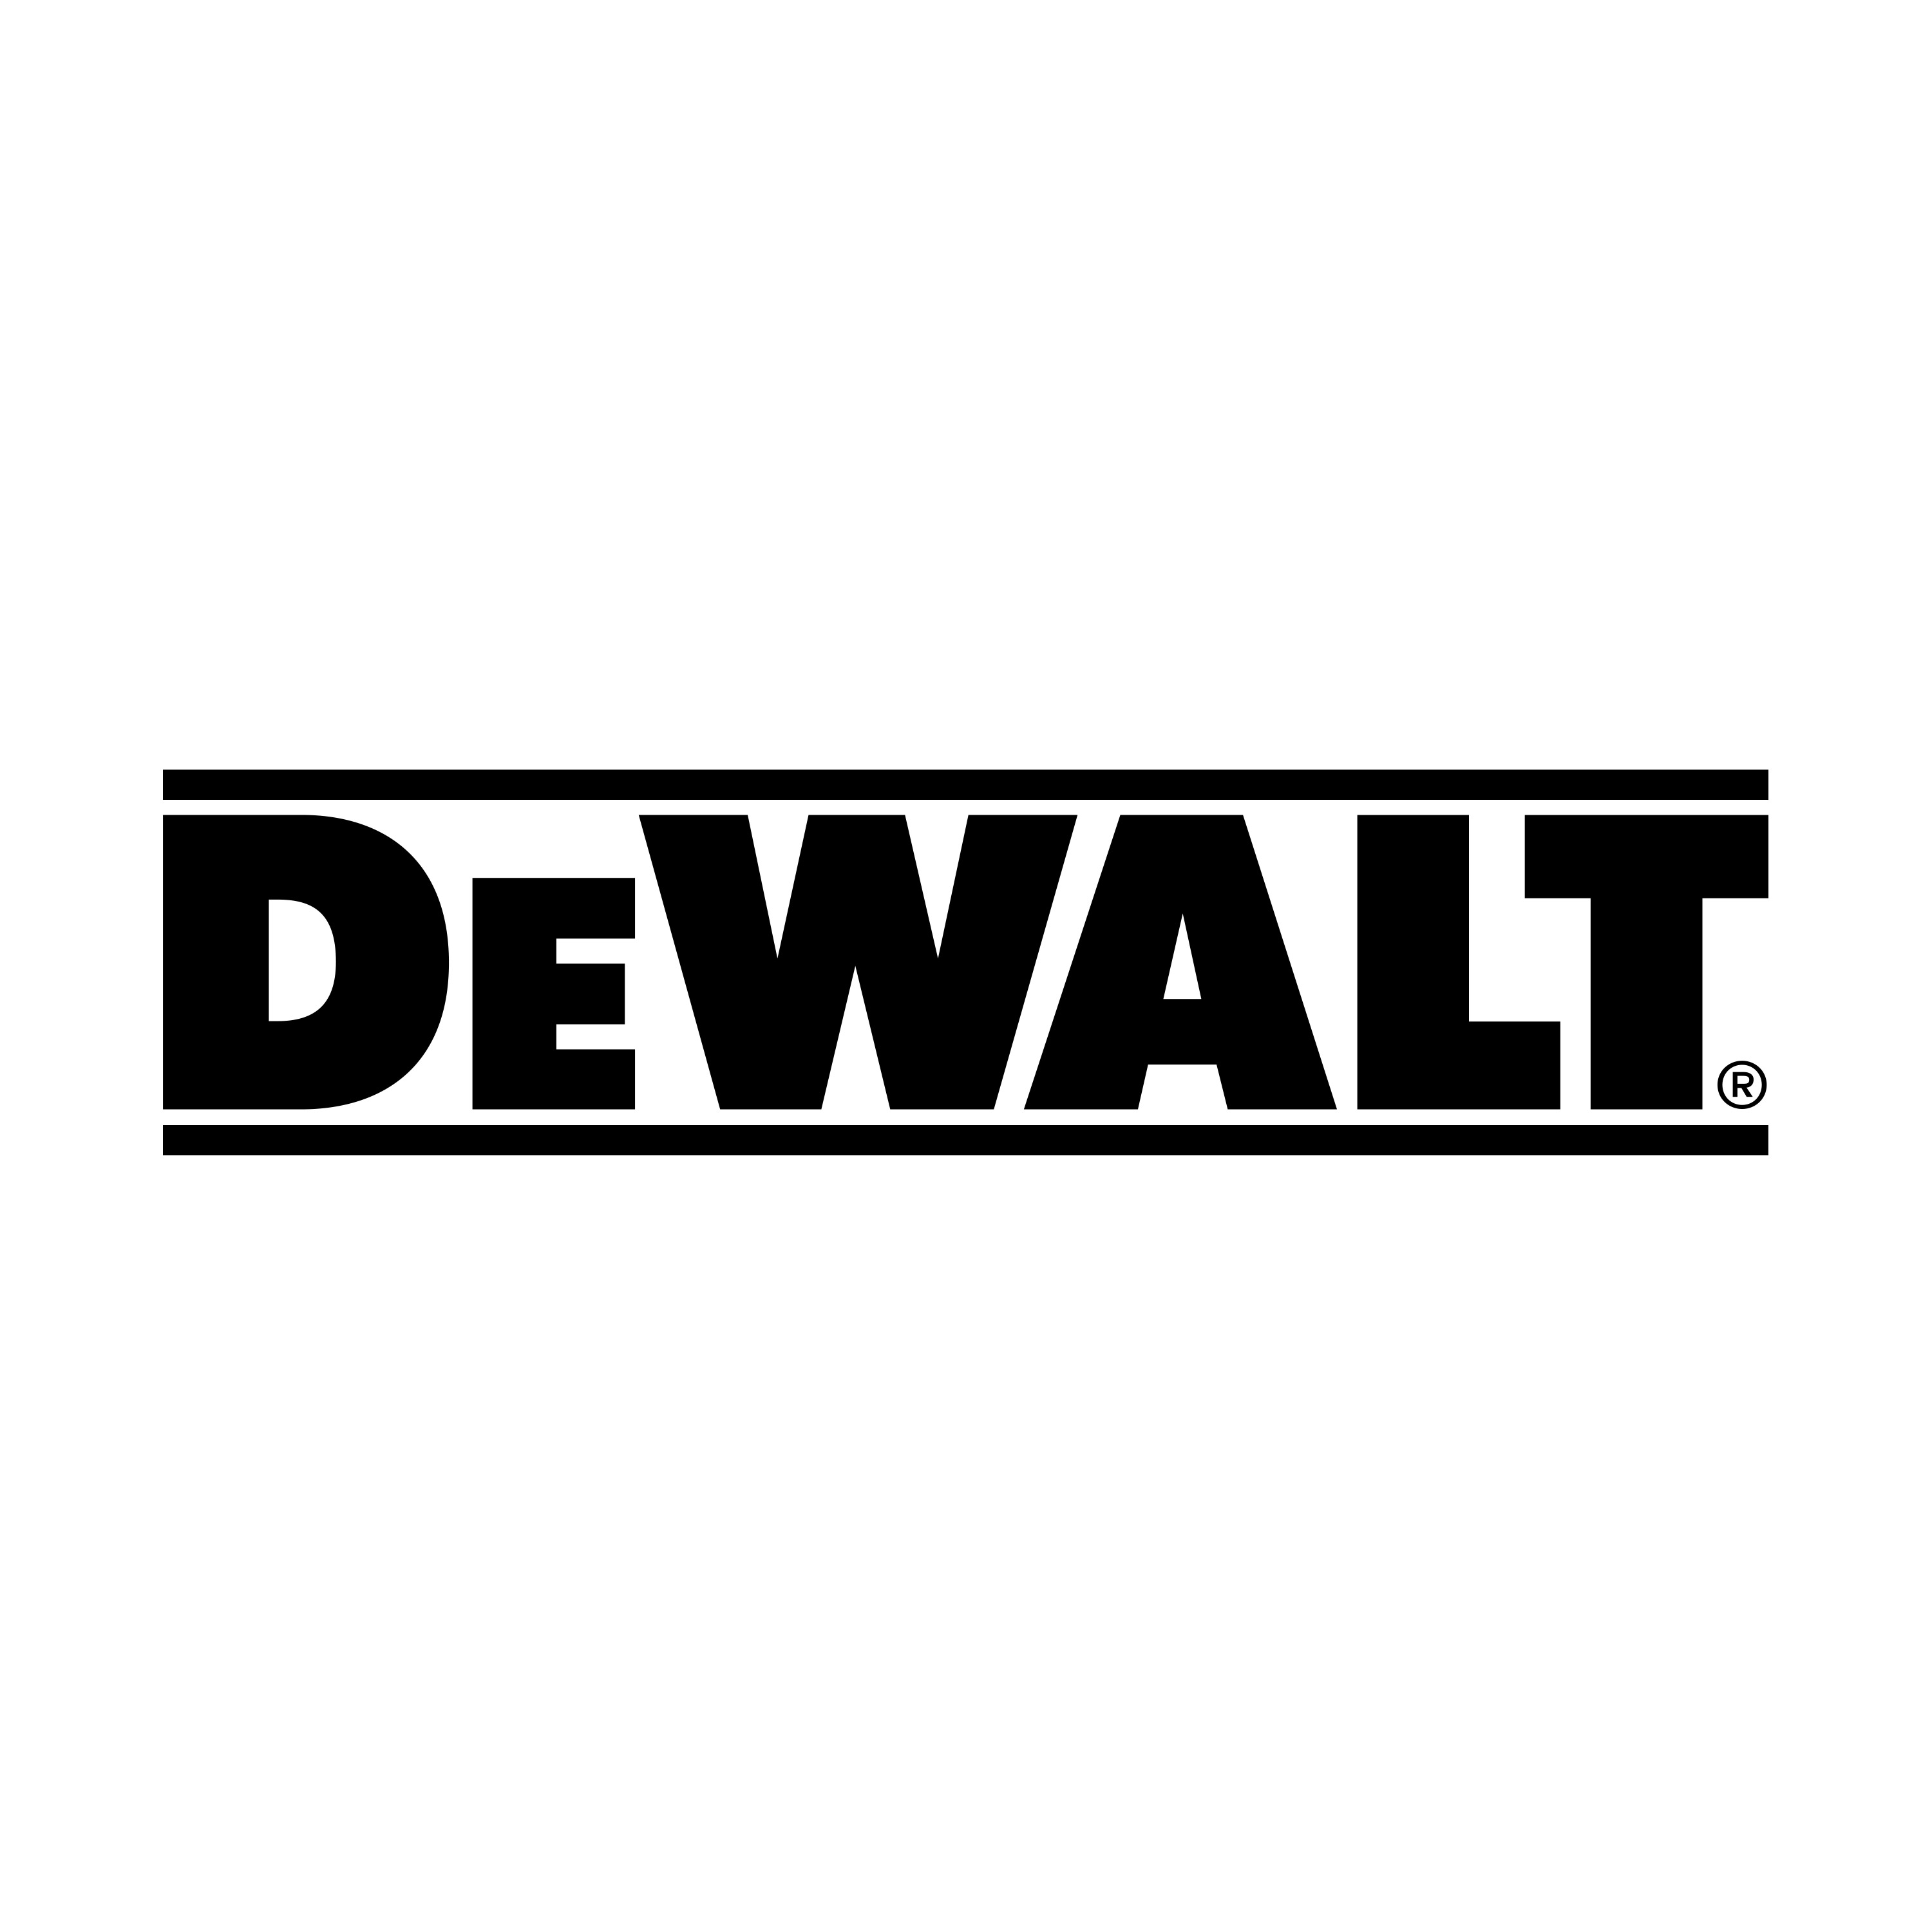 DeWALT® HP™ DW4917 Heavy Duty Cup Brush, 6 in Dia Brush, 5/8-11 Arbor Hole, 0.02 in Dia Filament/Wire, Knot, Carbon Steel Fill